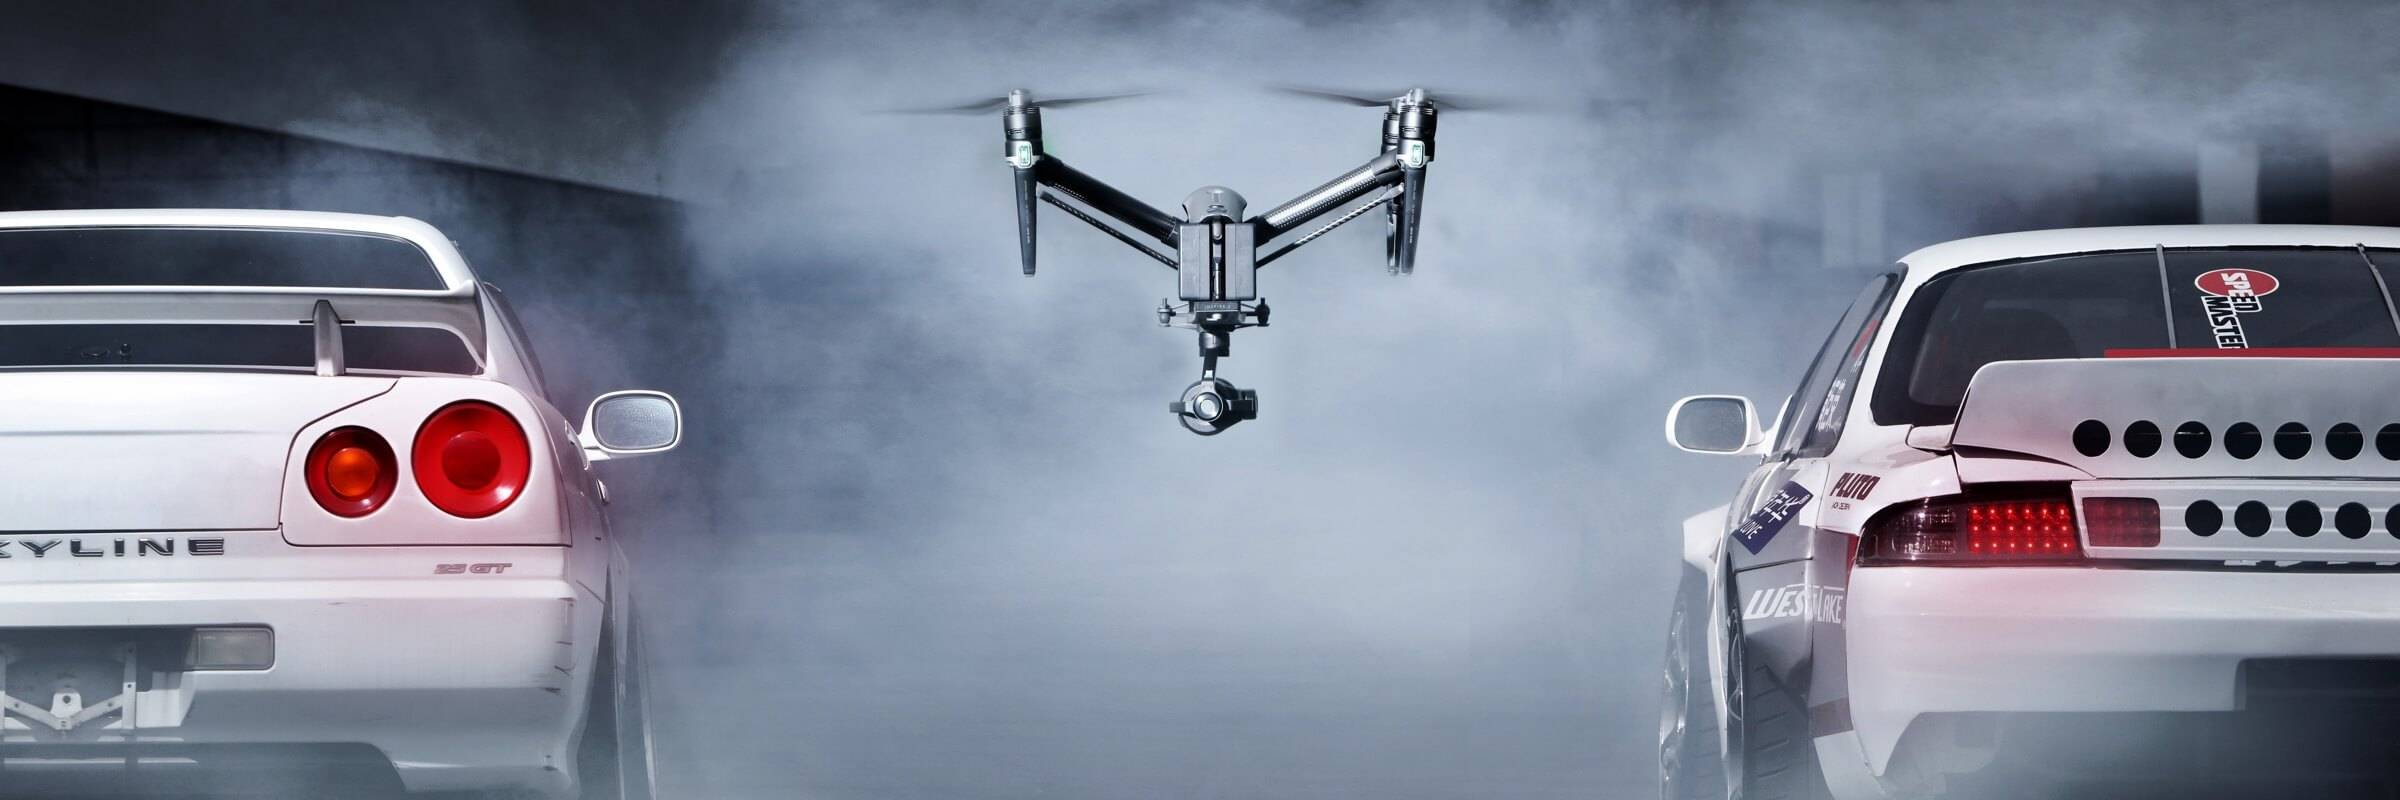 DJI Inspire 2 Obstacle Avoidnace